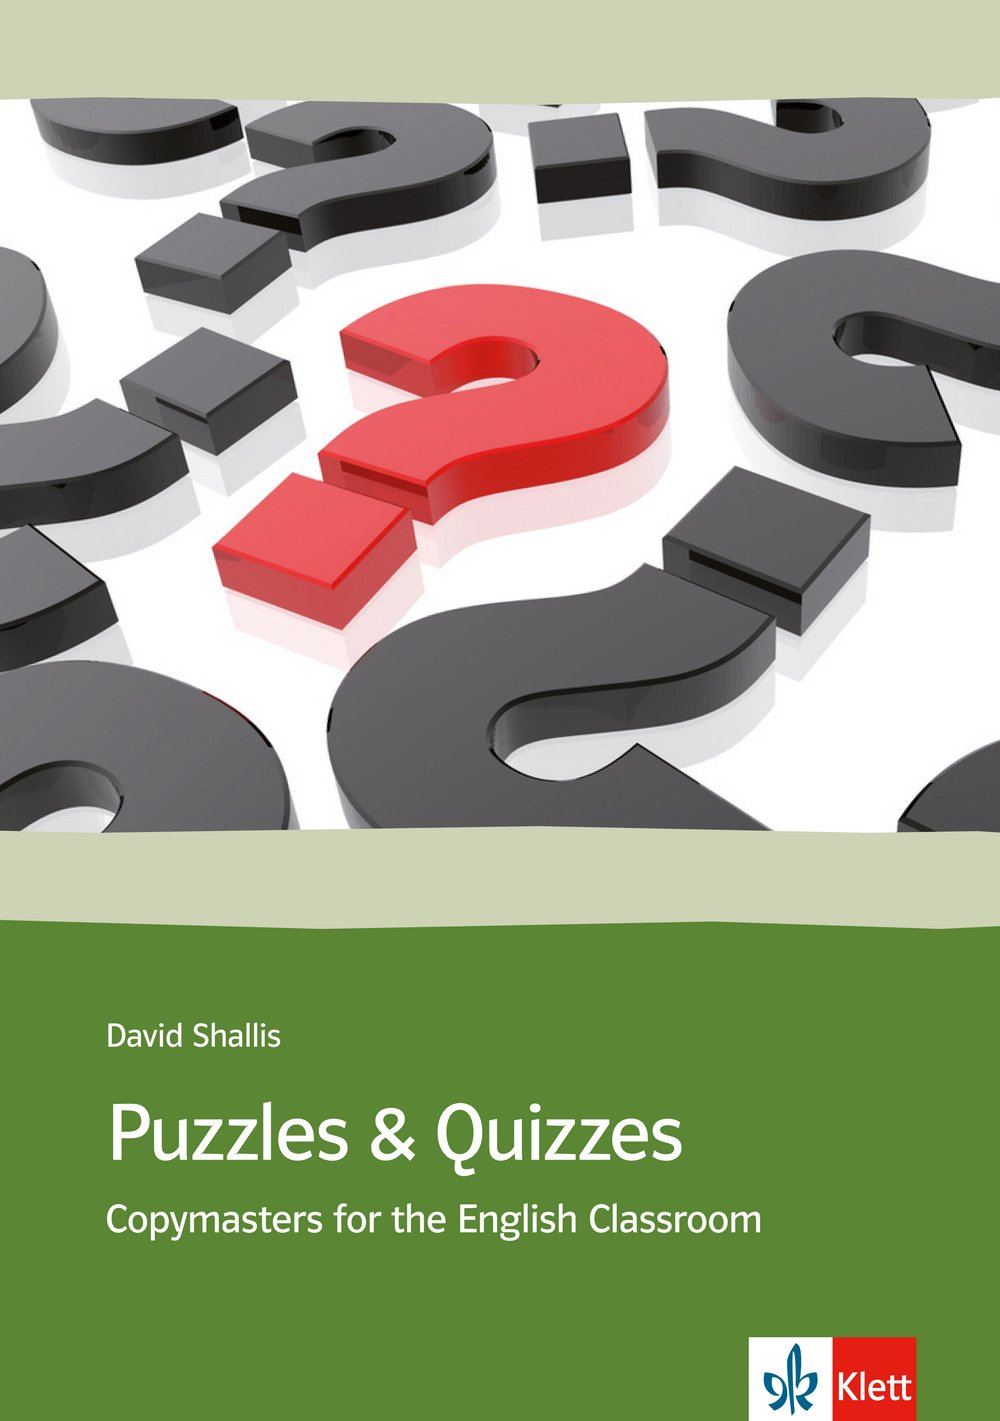 Puzzles & Quizzes: Copymasters for the English Classroom